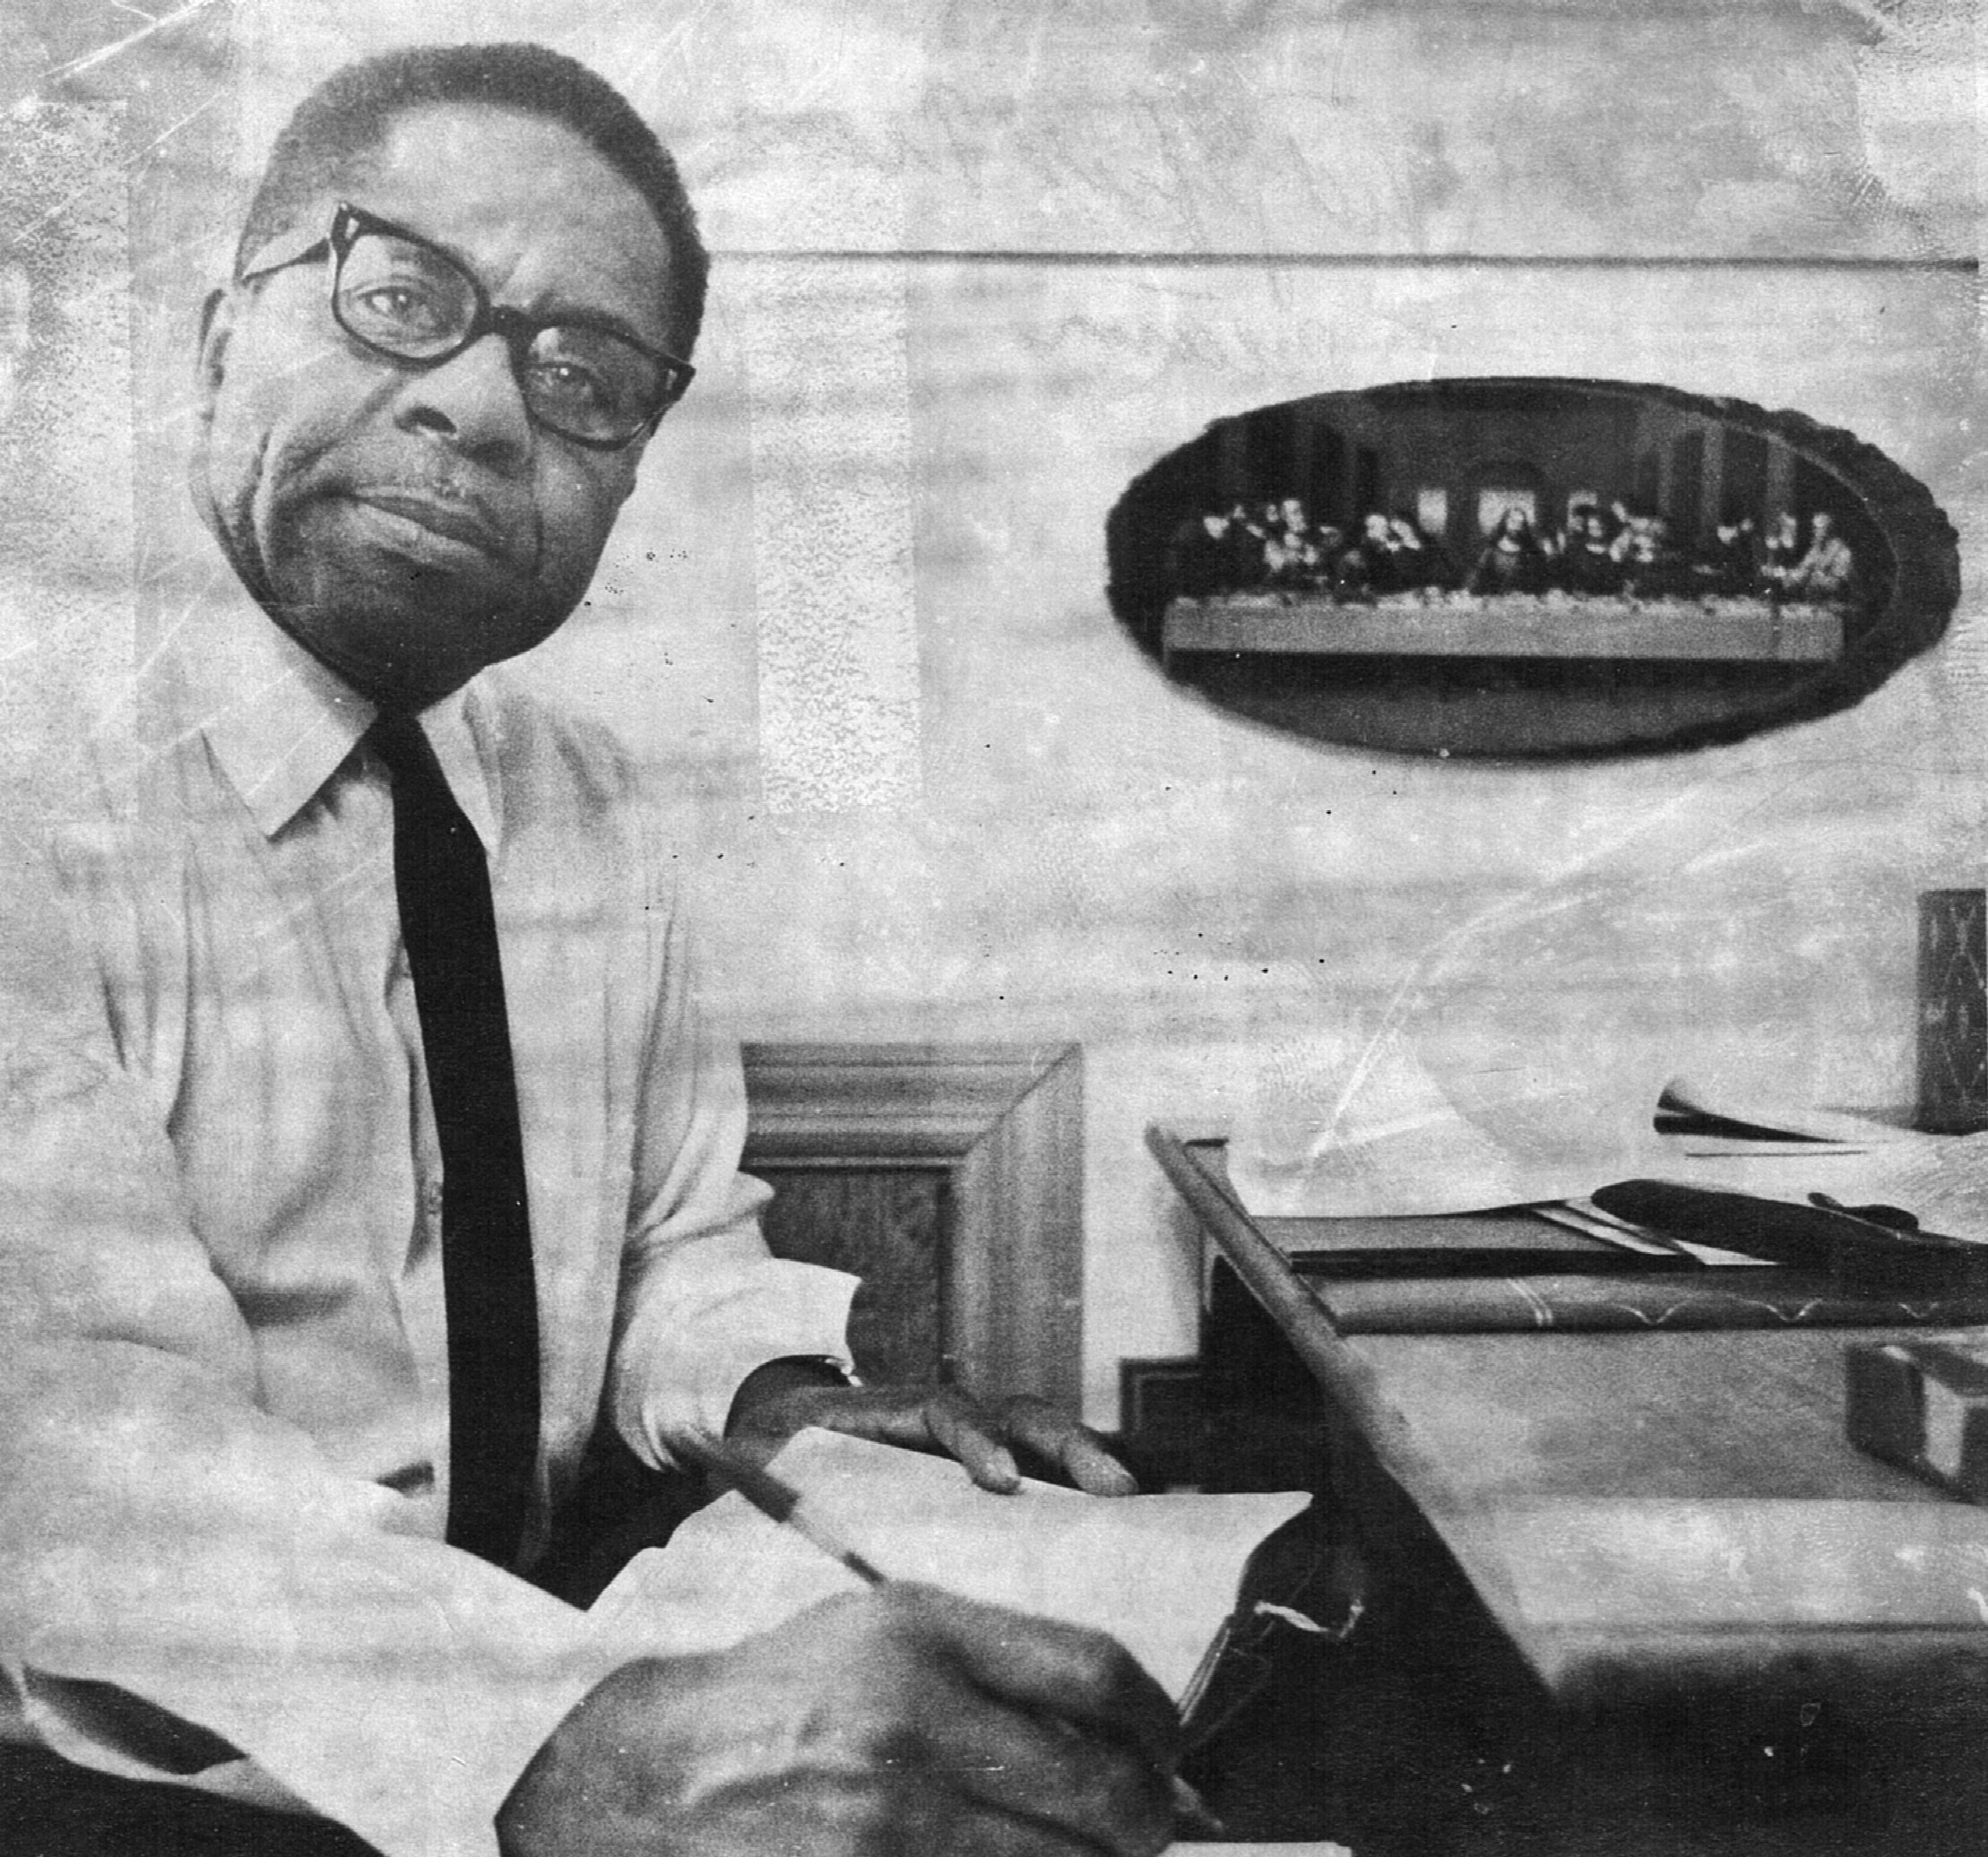 William Webb, who founded Ridgefield CT's NAACP chapter in the 1950's.